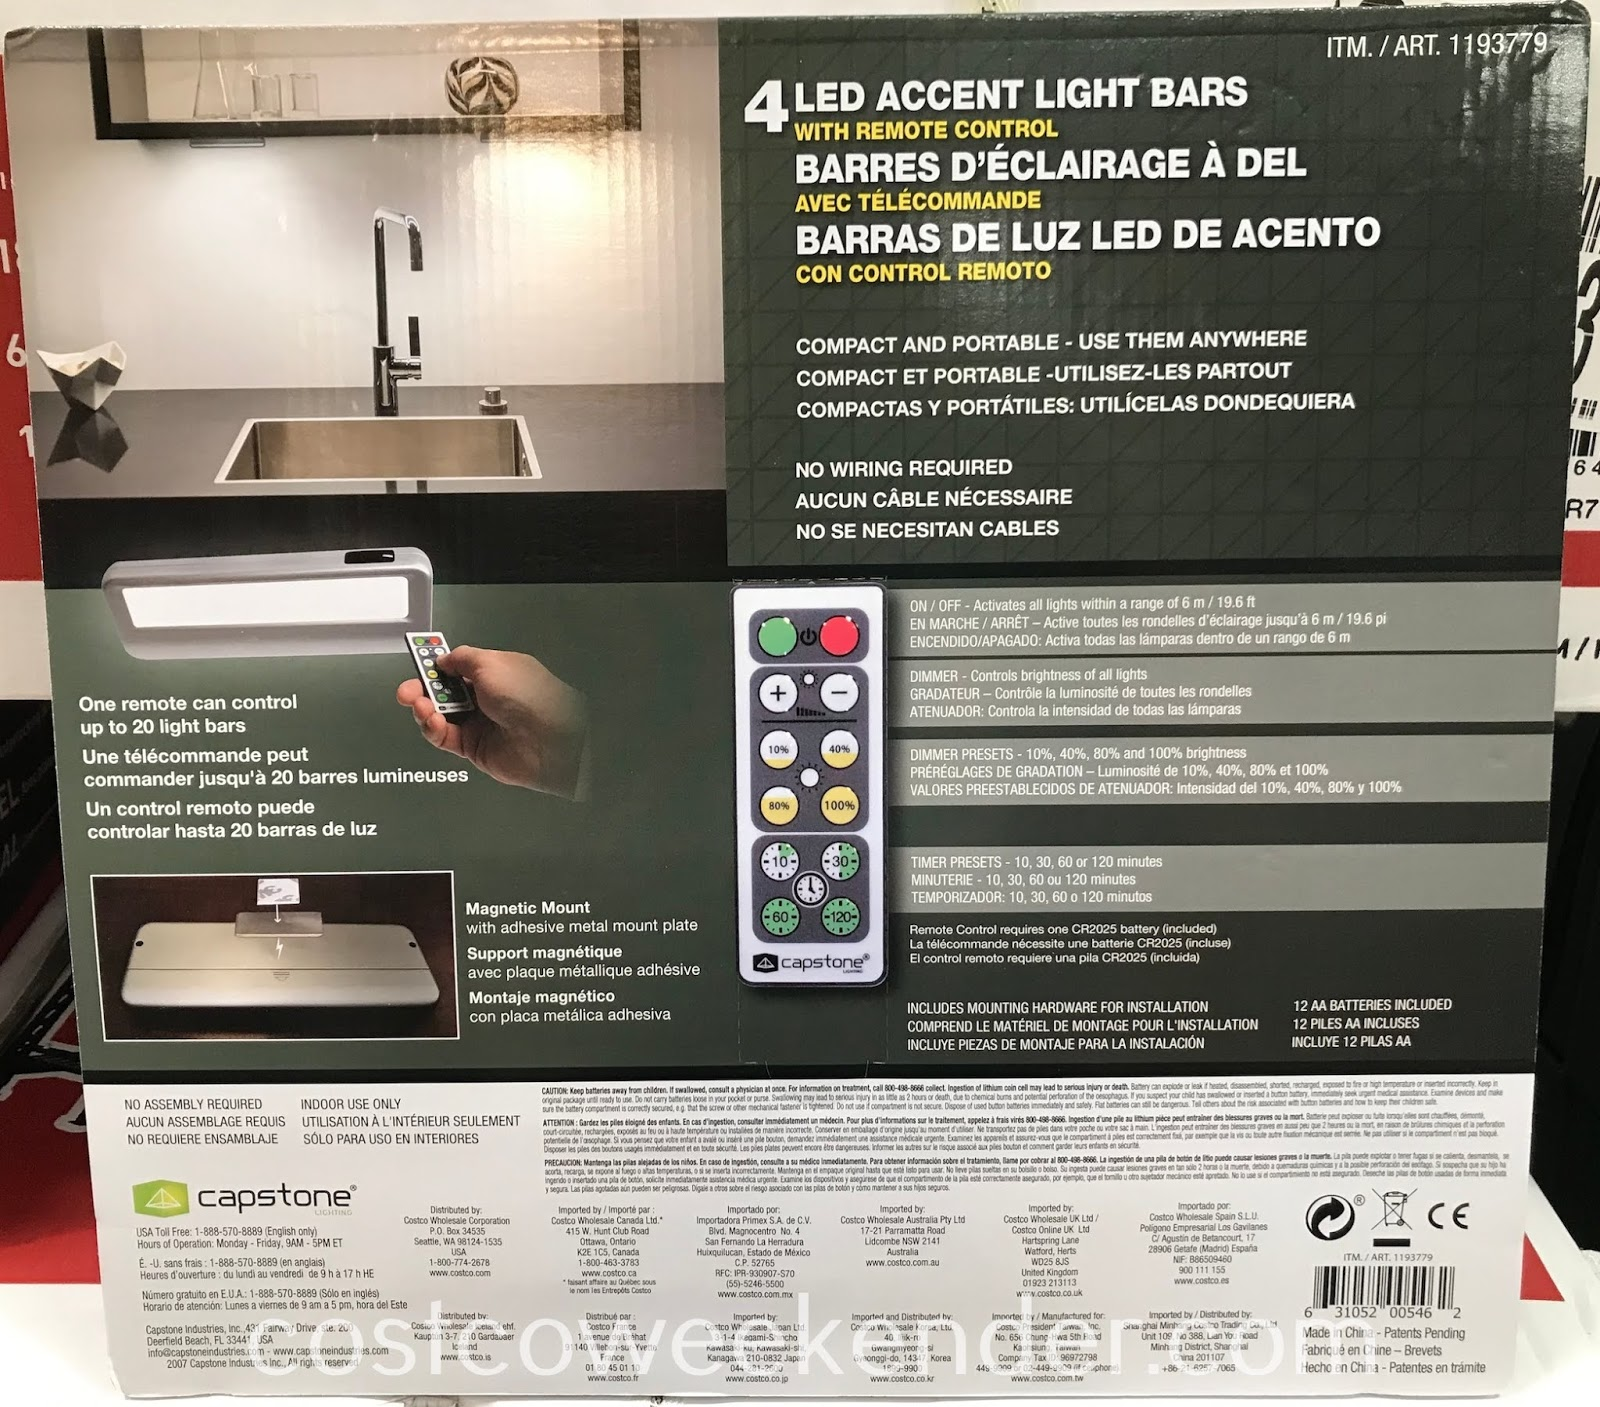 Costco 1193779 - Capstone LED Accent Light Bars: cool and great for any home